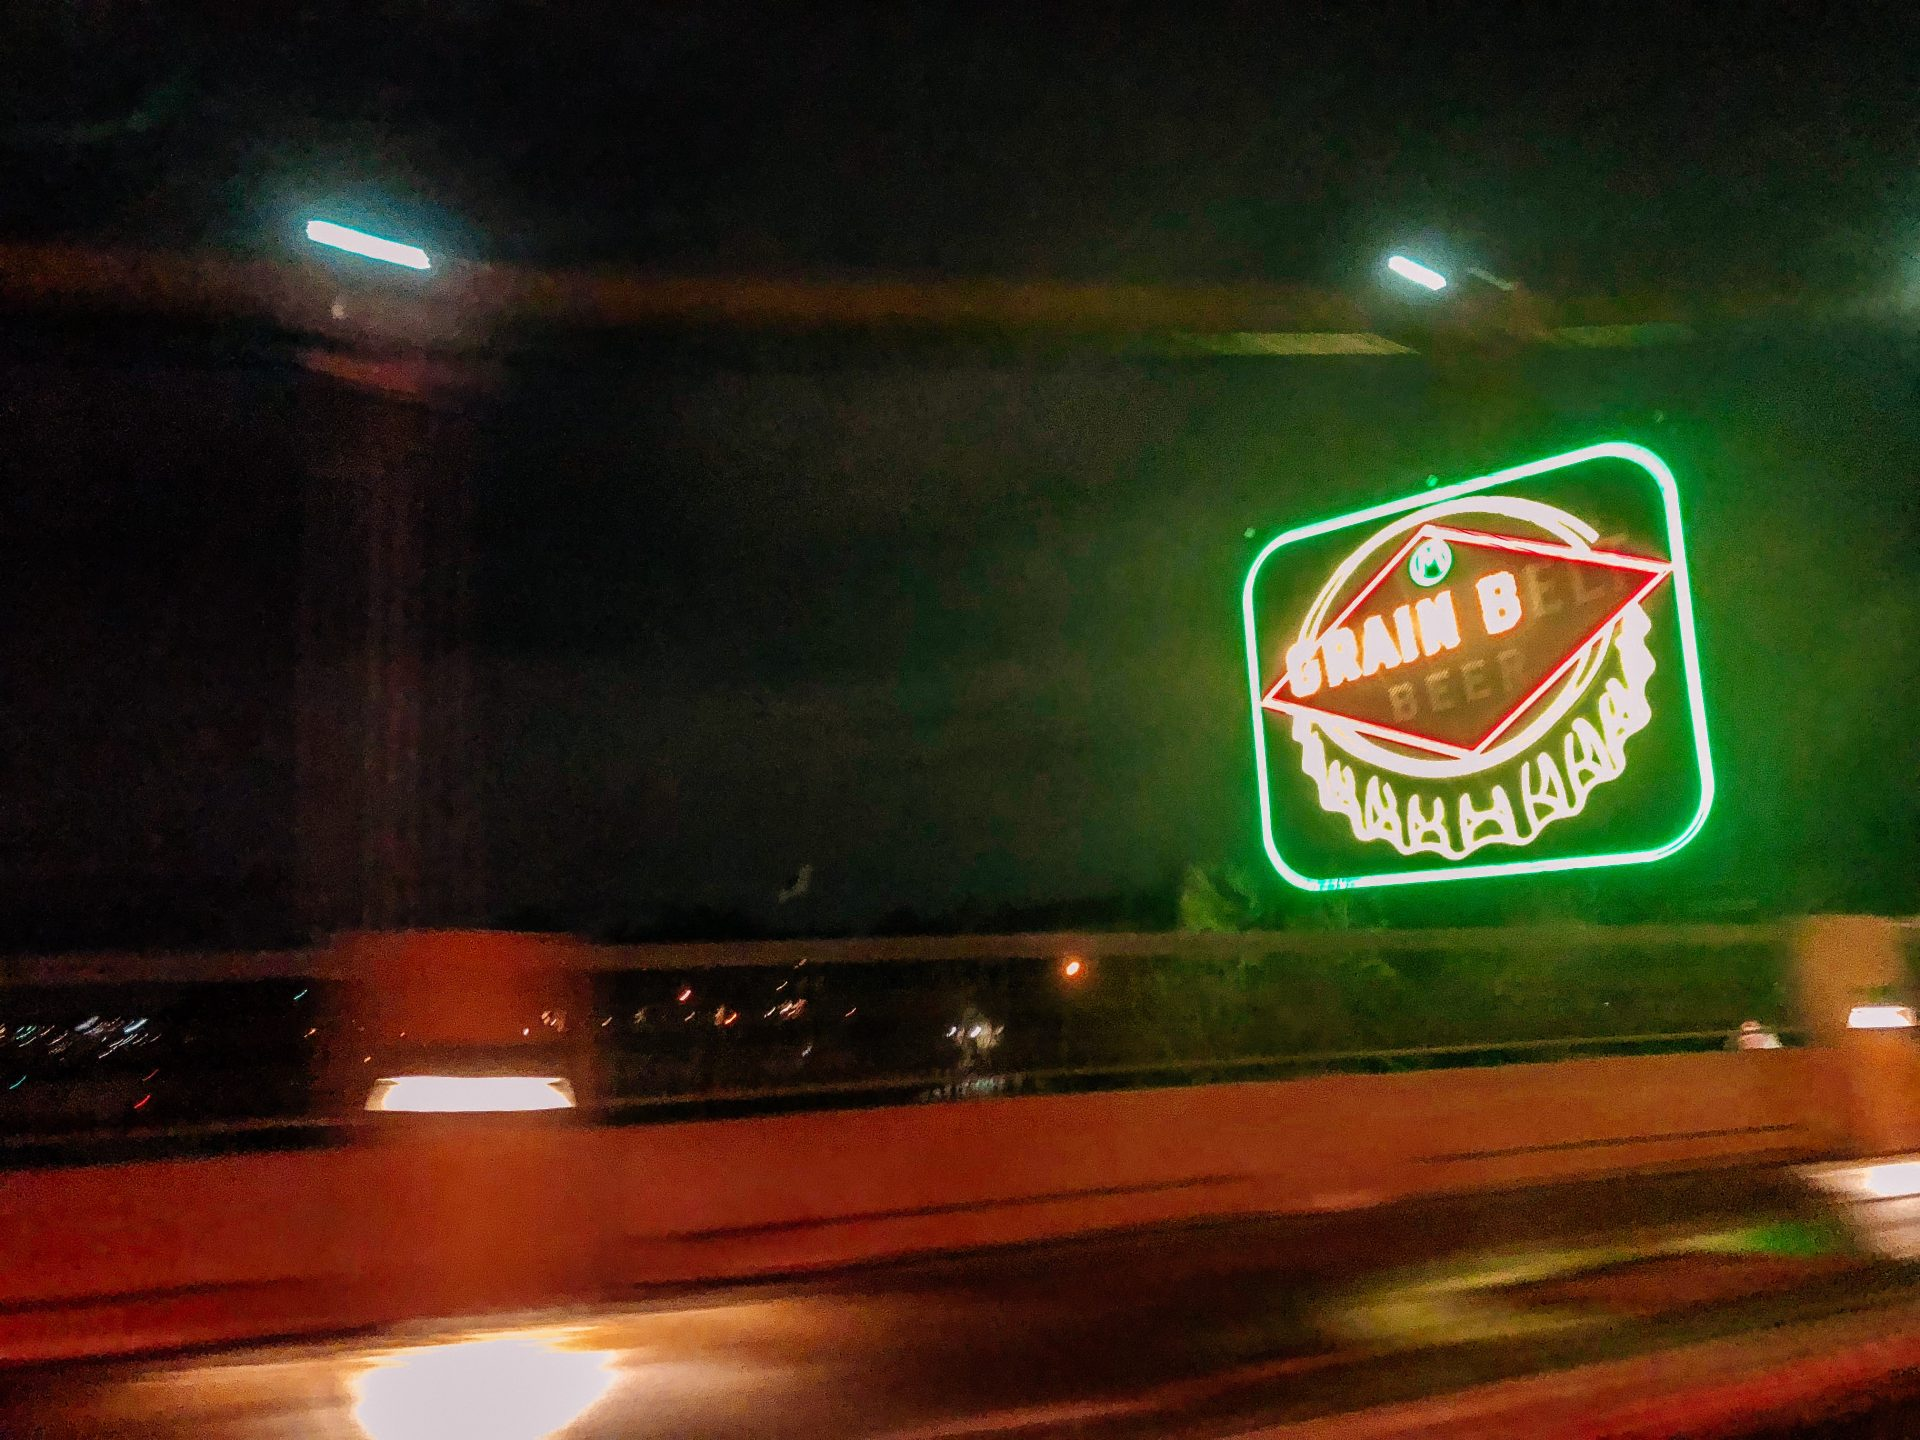 Grain belt sign lit up at night in minneapolis mn downtown on the hennepin suspension bridge